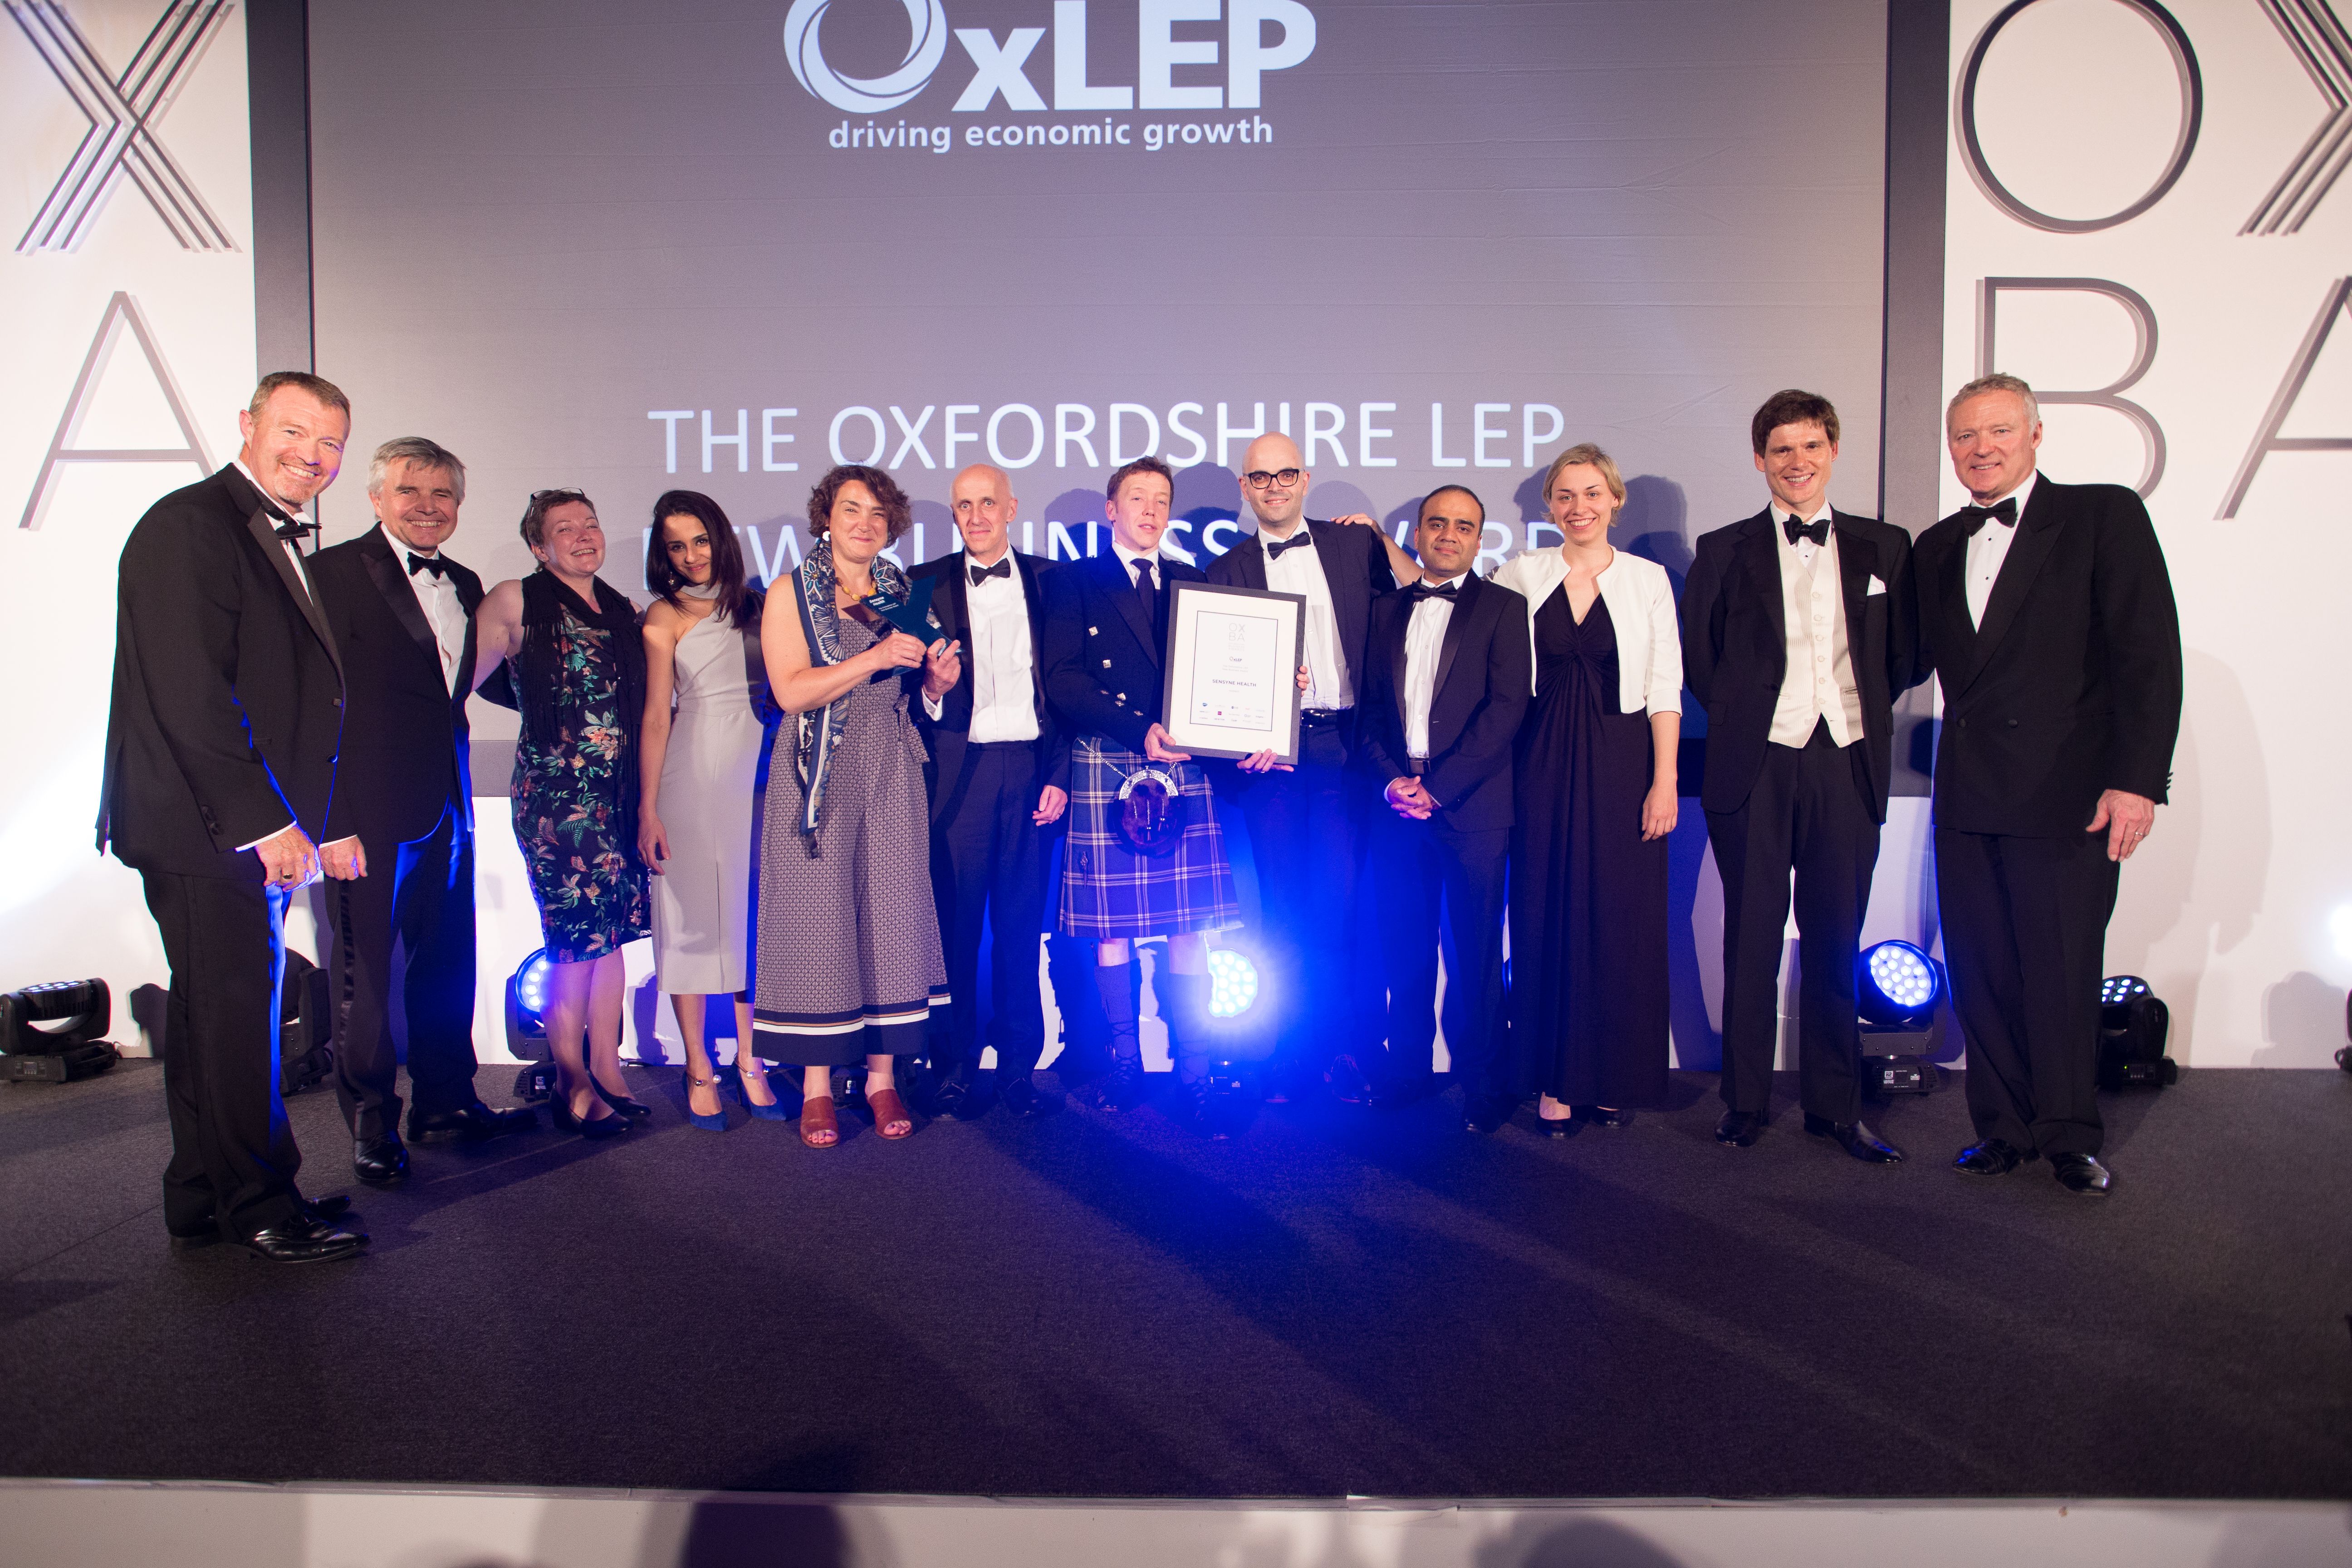 The Oxfordshire LEP New Business Award